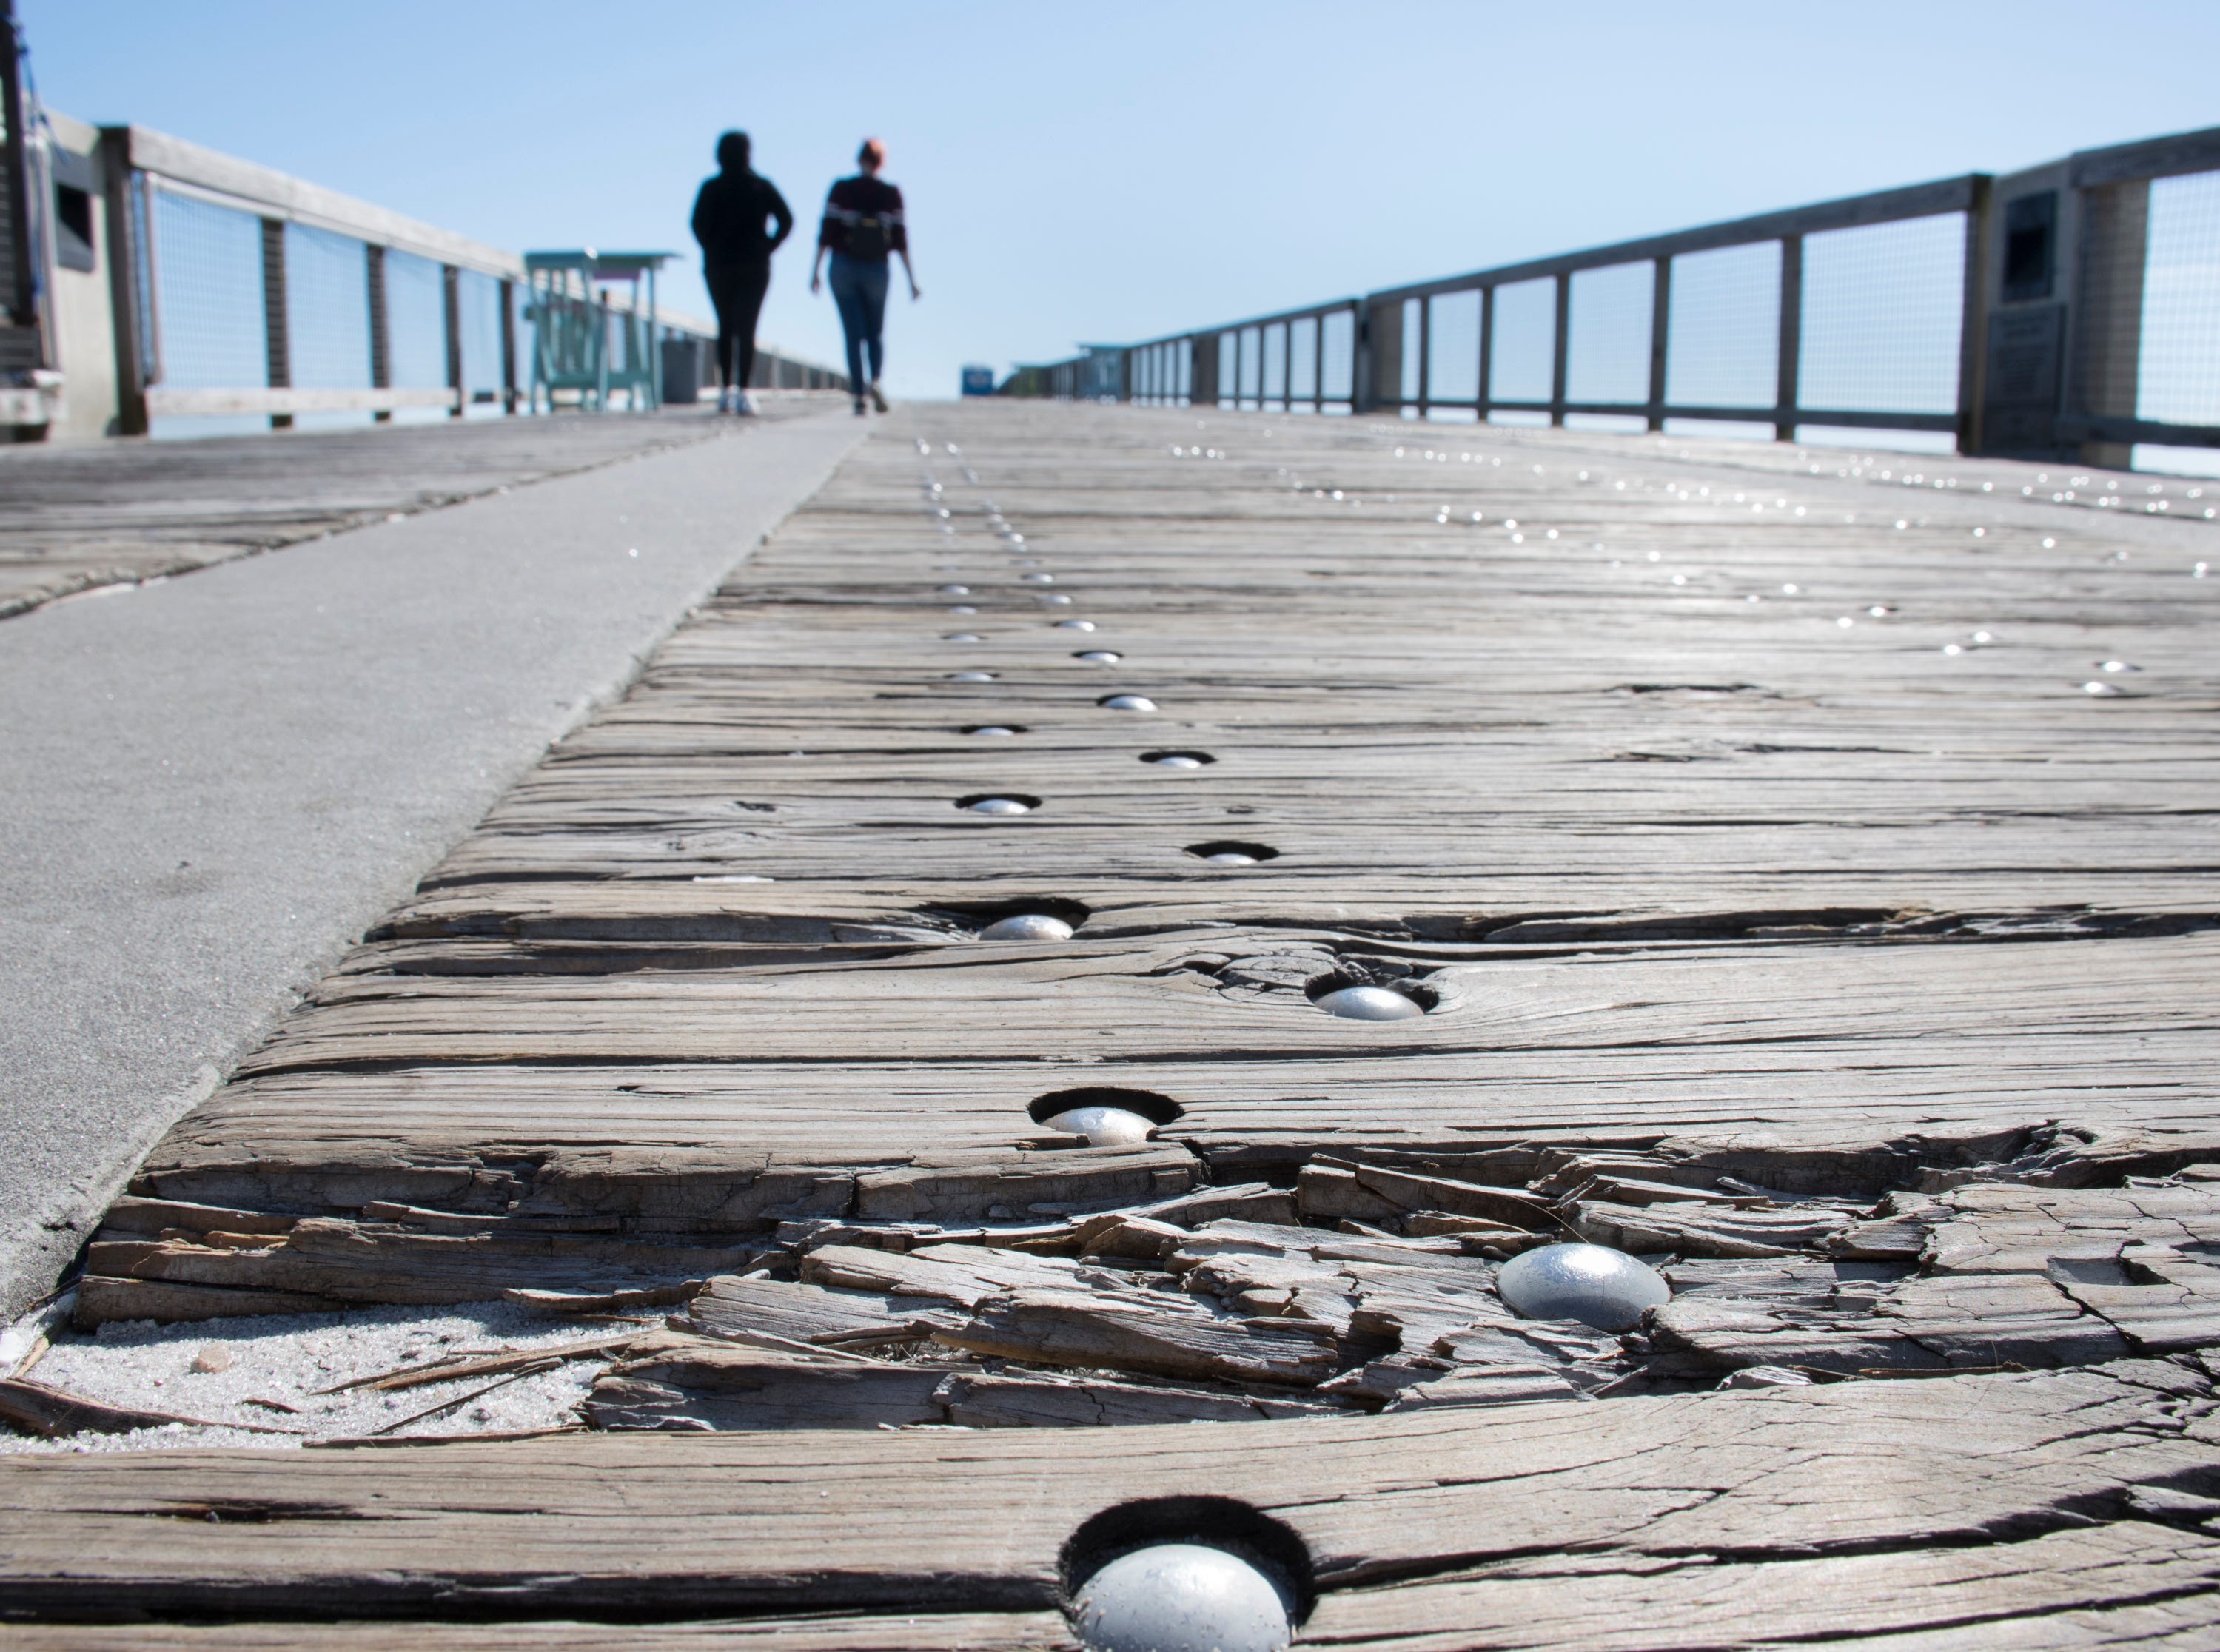 Visitors walk along the pier that is in need of repair in Navarre on Friday, January 11, 2019.  The pier is slated to get a major makeover this year complete with new decking material.